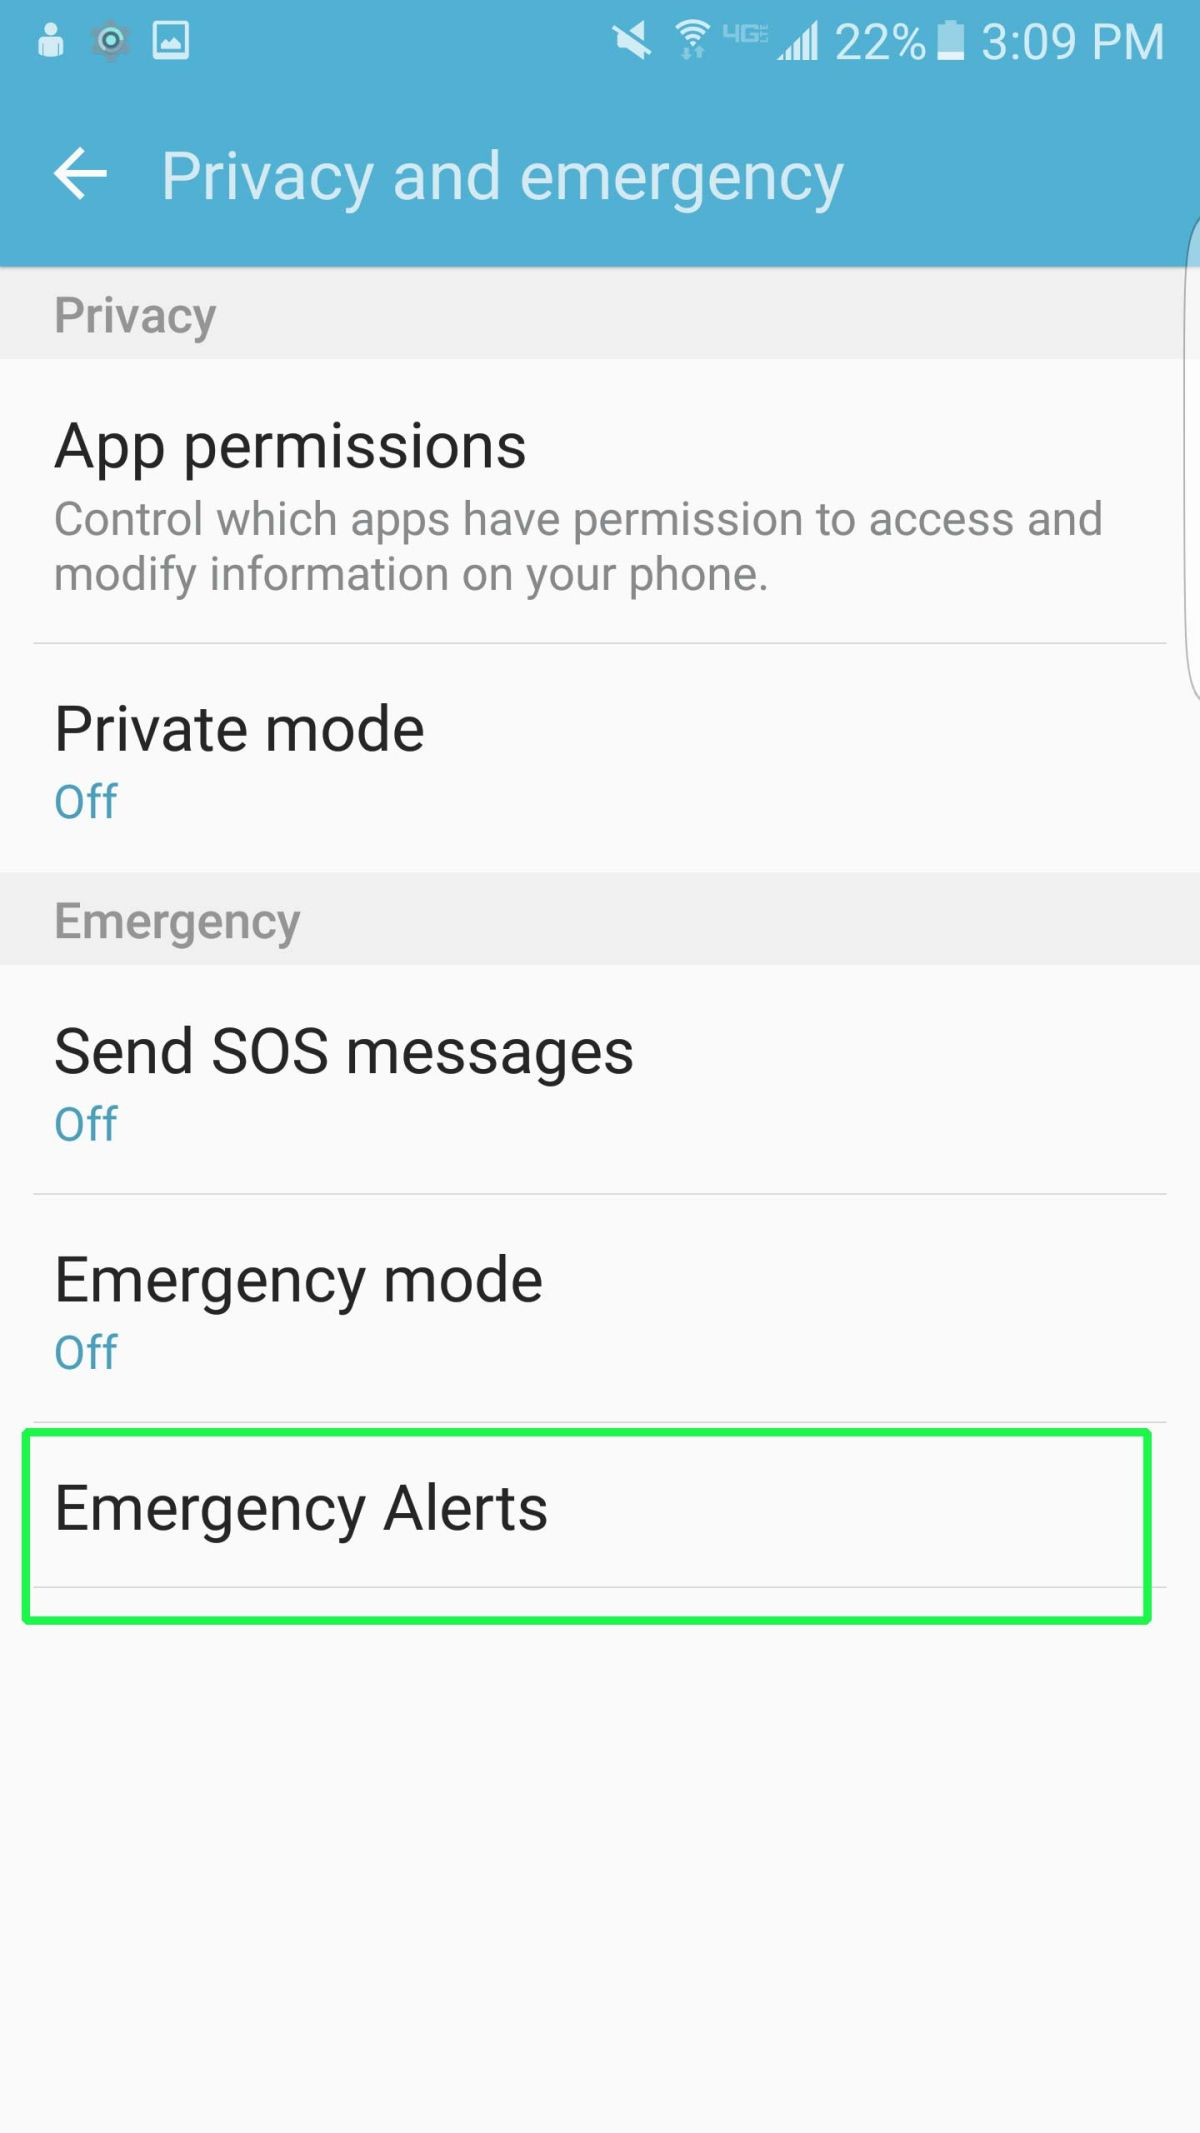 How to Disable Emergency or Amber Alerts on Your Galaxy S7